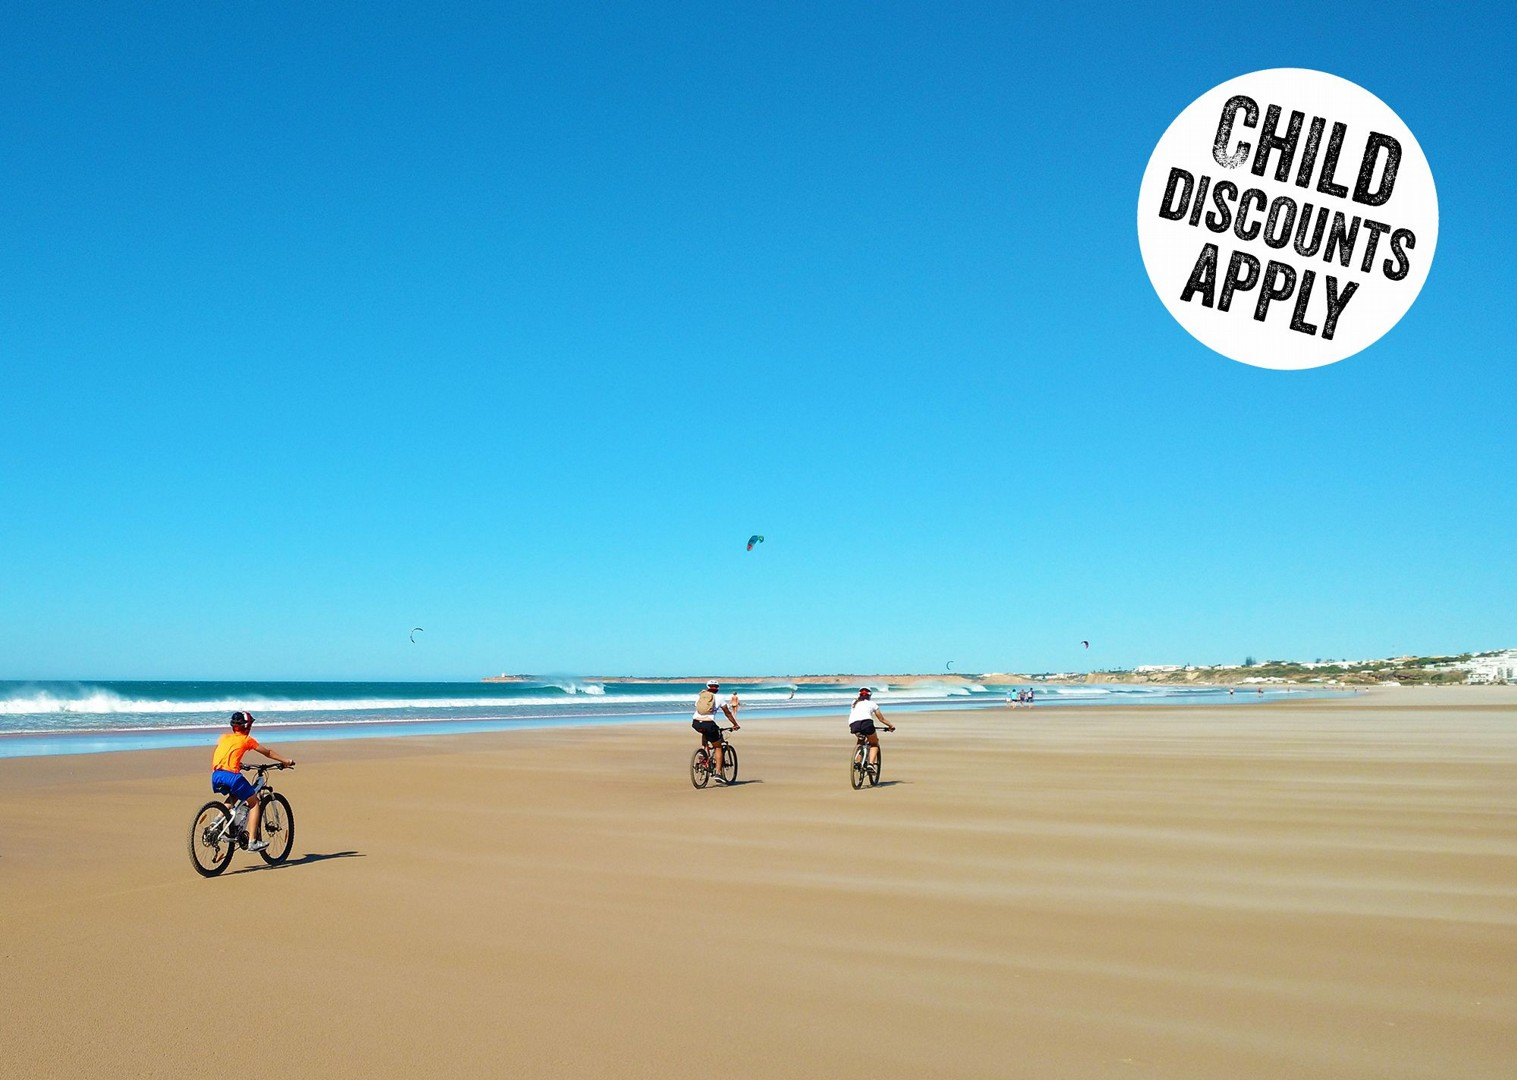 shout spain family.jpg - Southern Spain - Coastal Adventurer - Self-Guided Family Cycling Holiday - Family Cycling